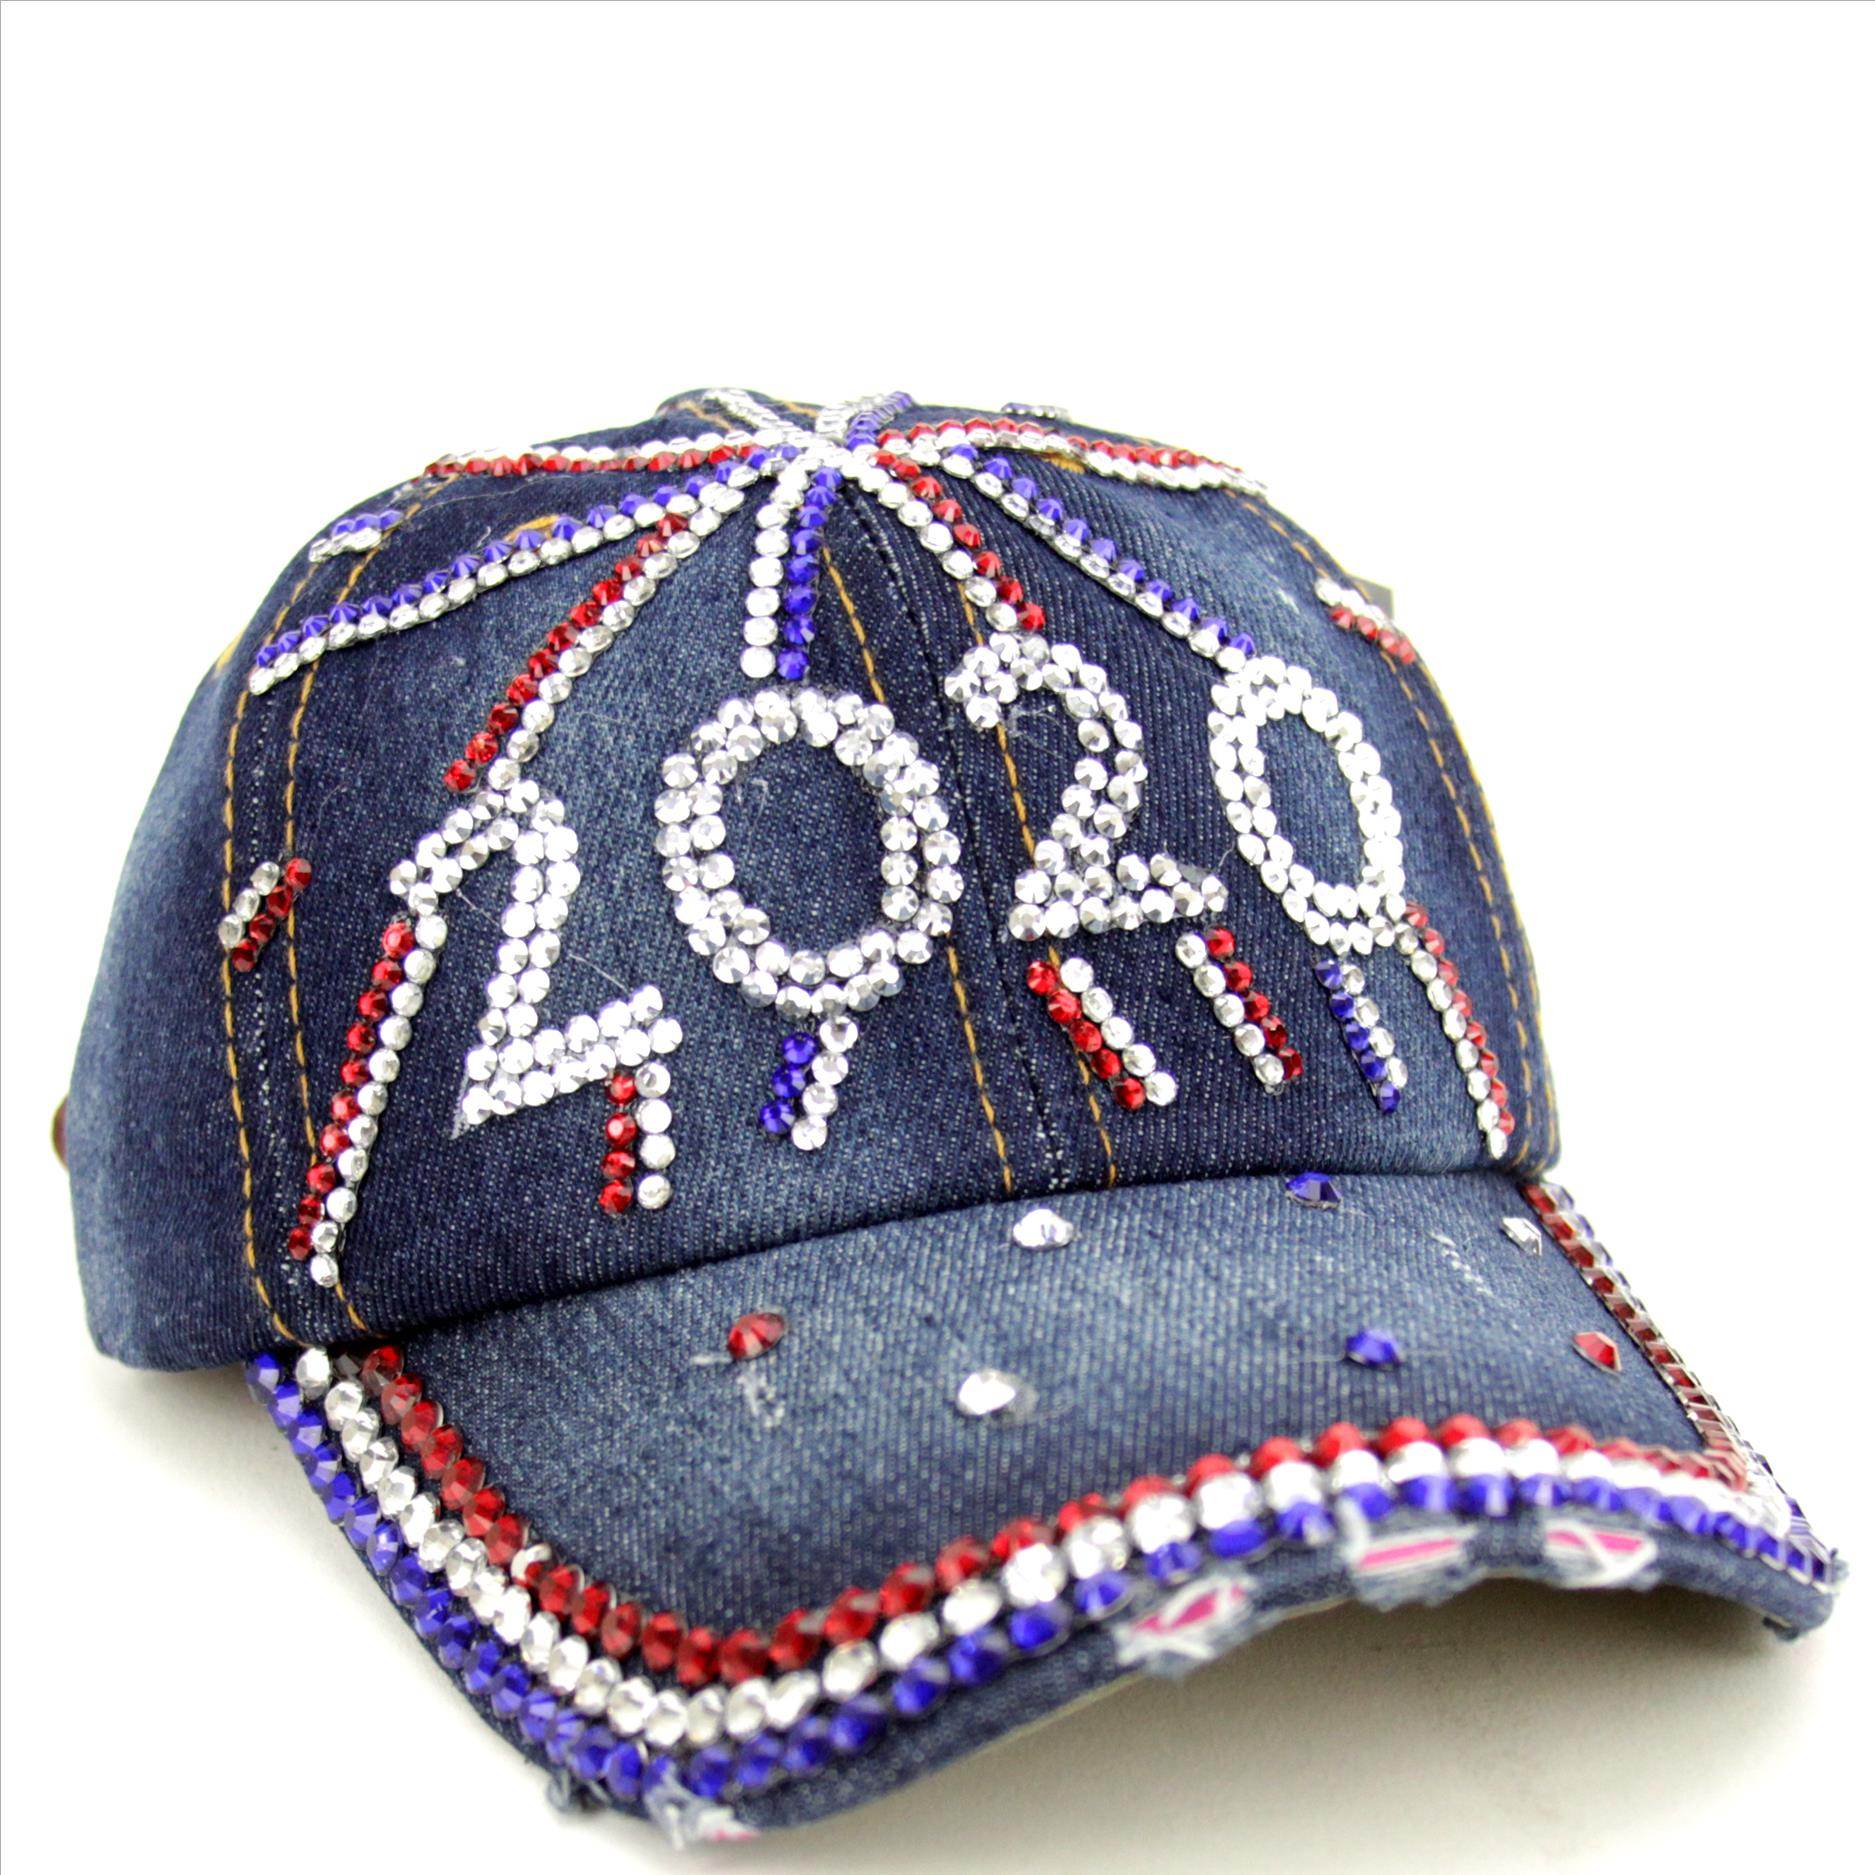 2020 Red, White and Blue Rhinestone Bling Hat on Denim